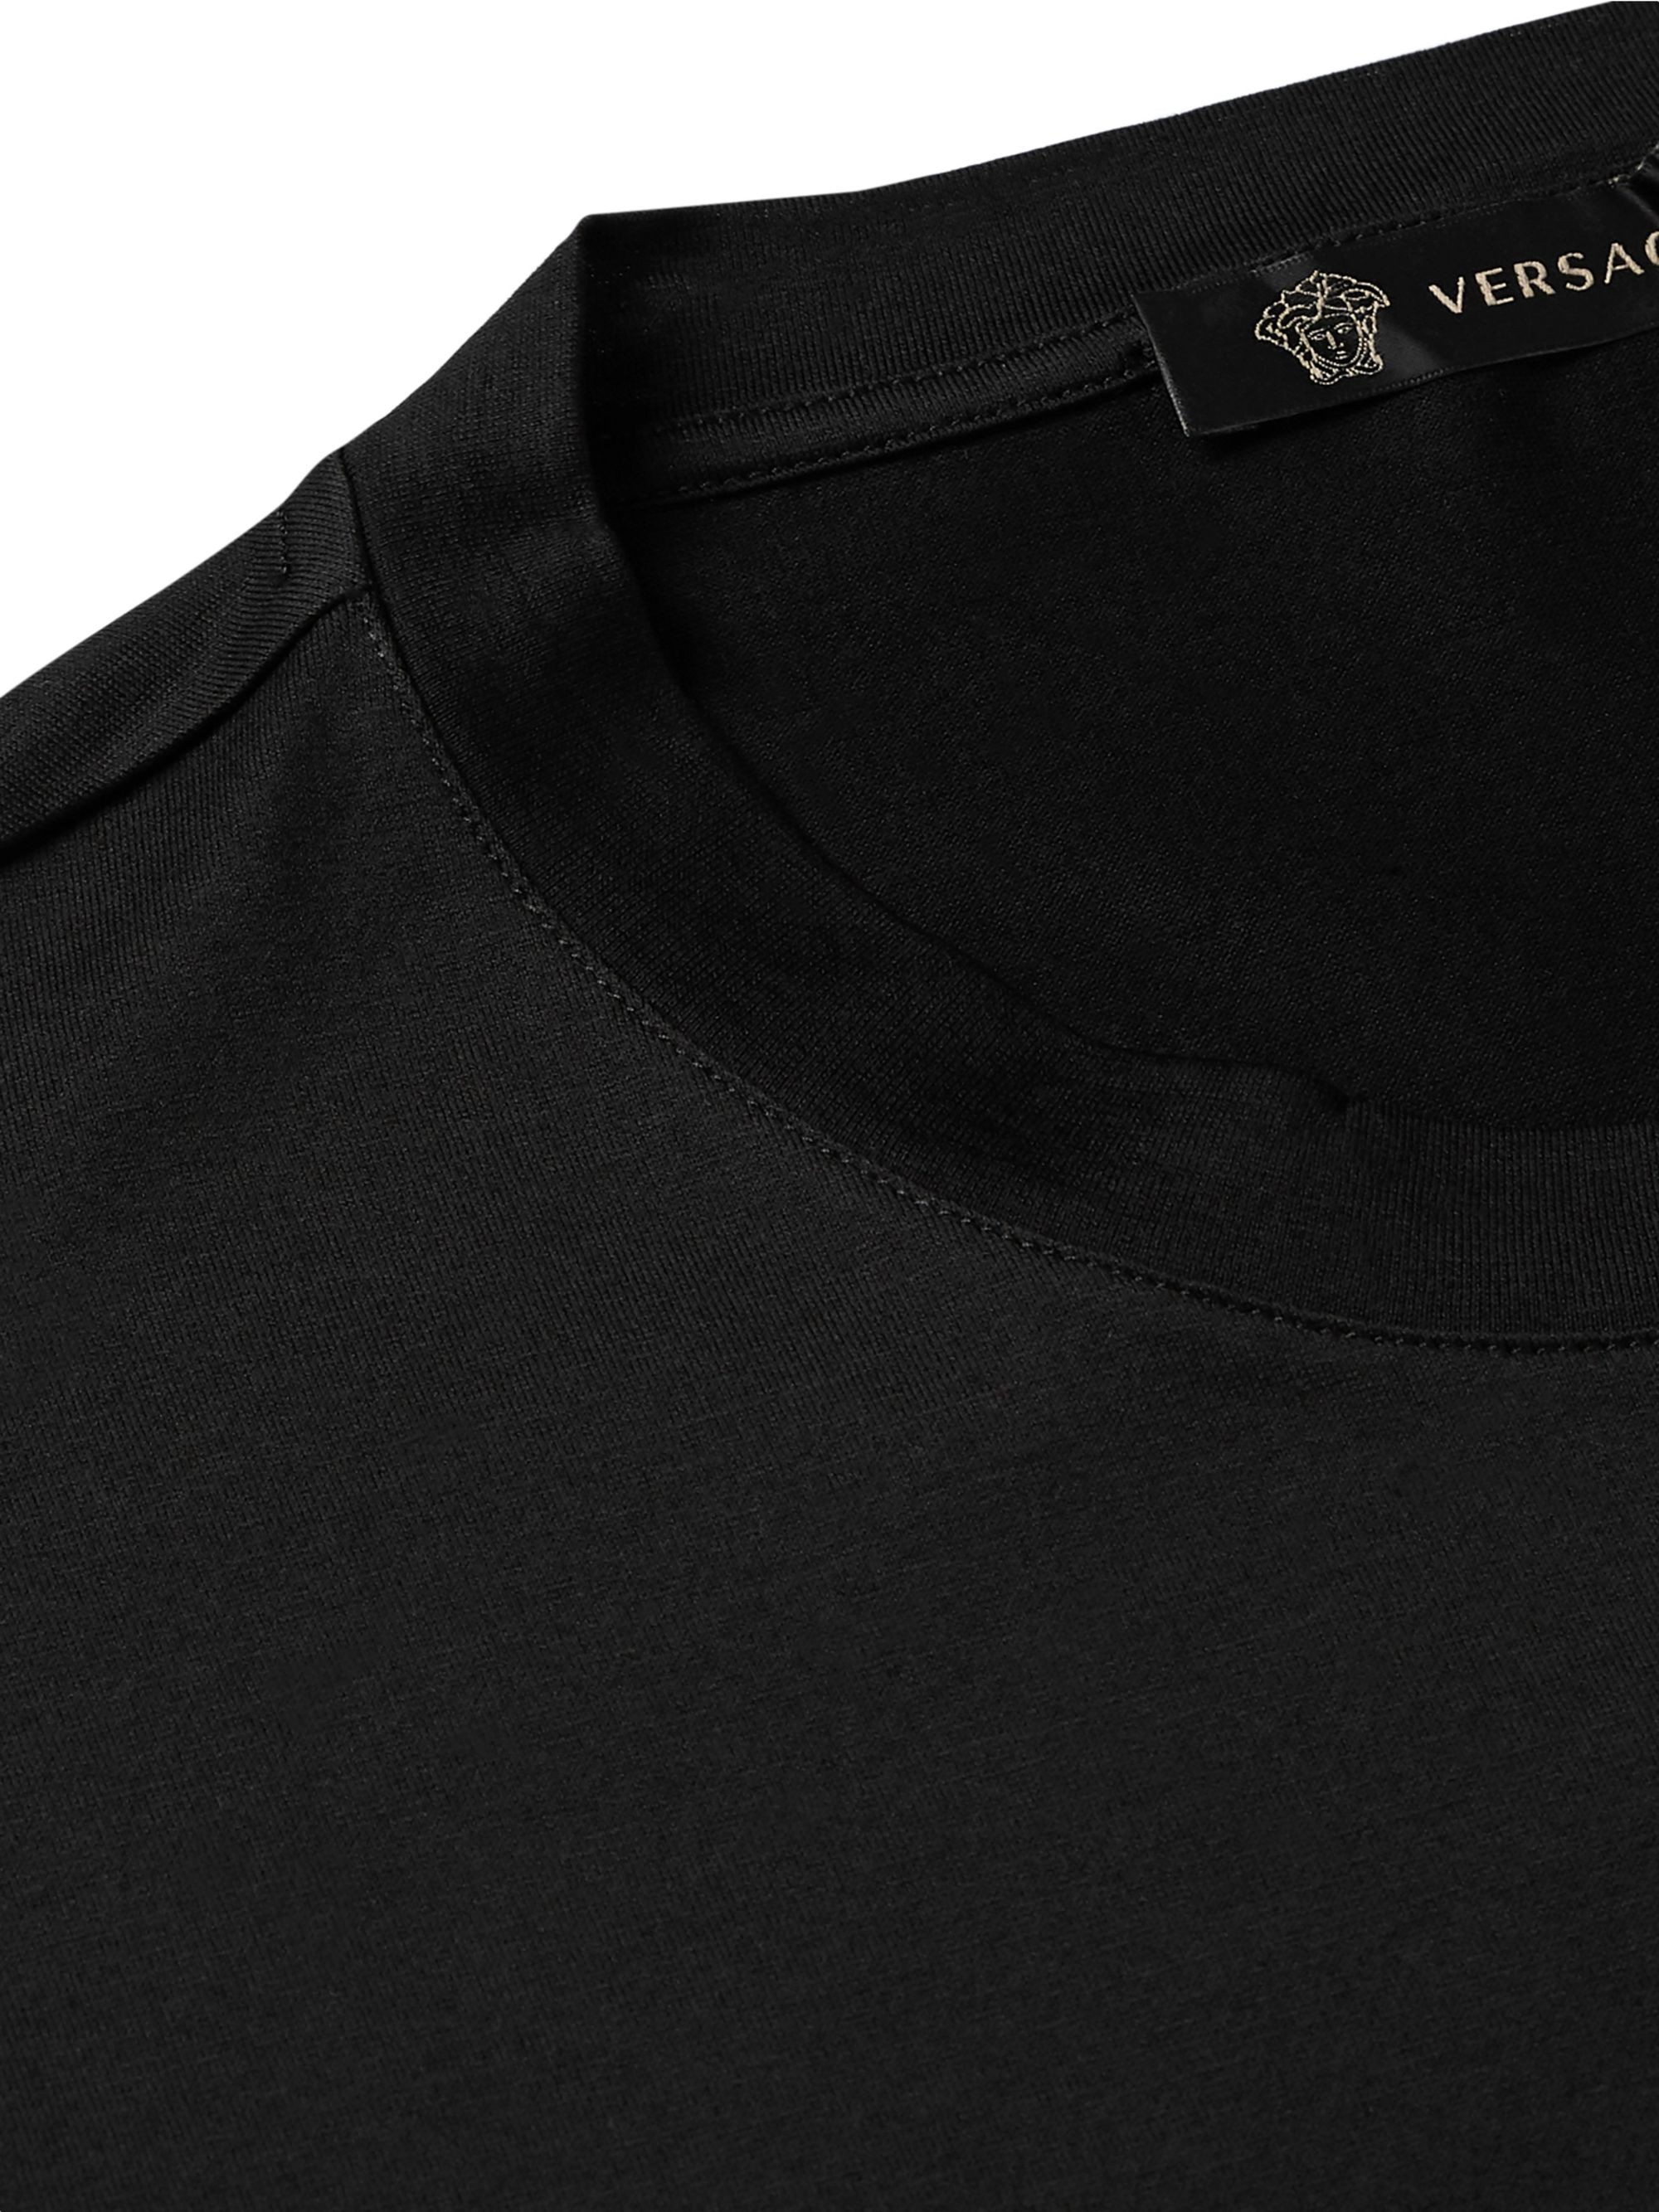 Versace Logo-Embellished Cotton-Jersey T-Shirt